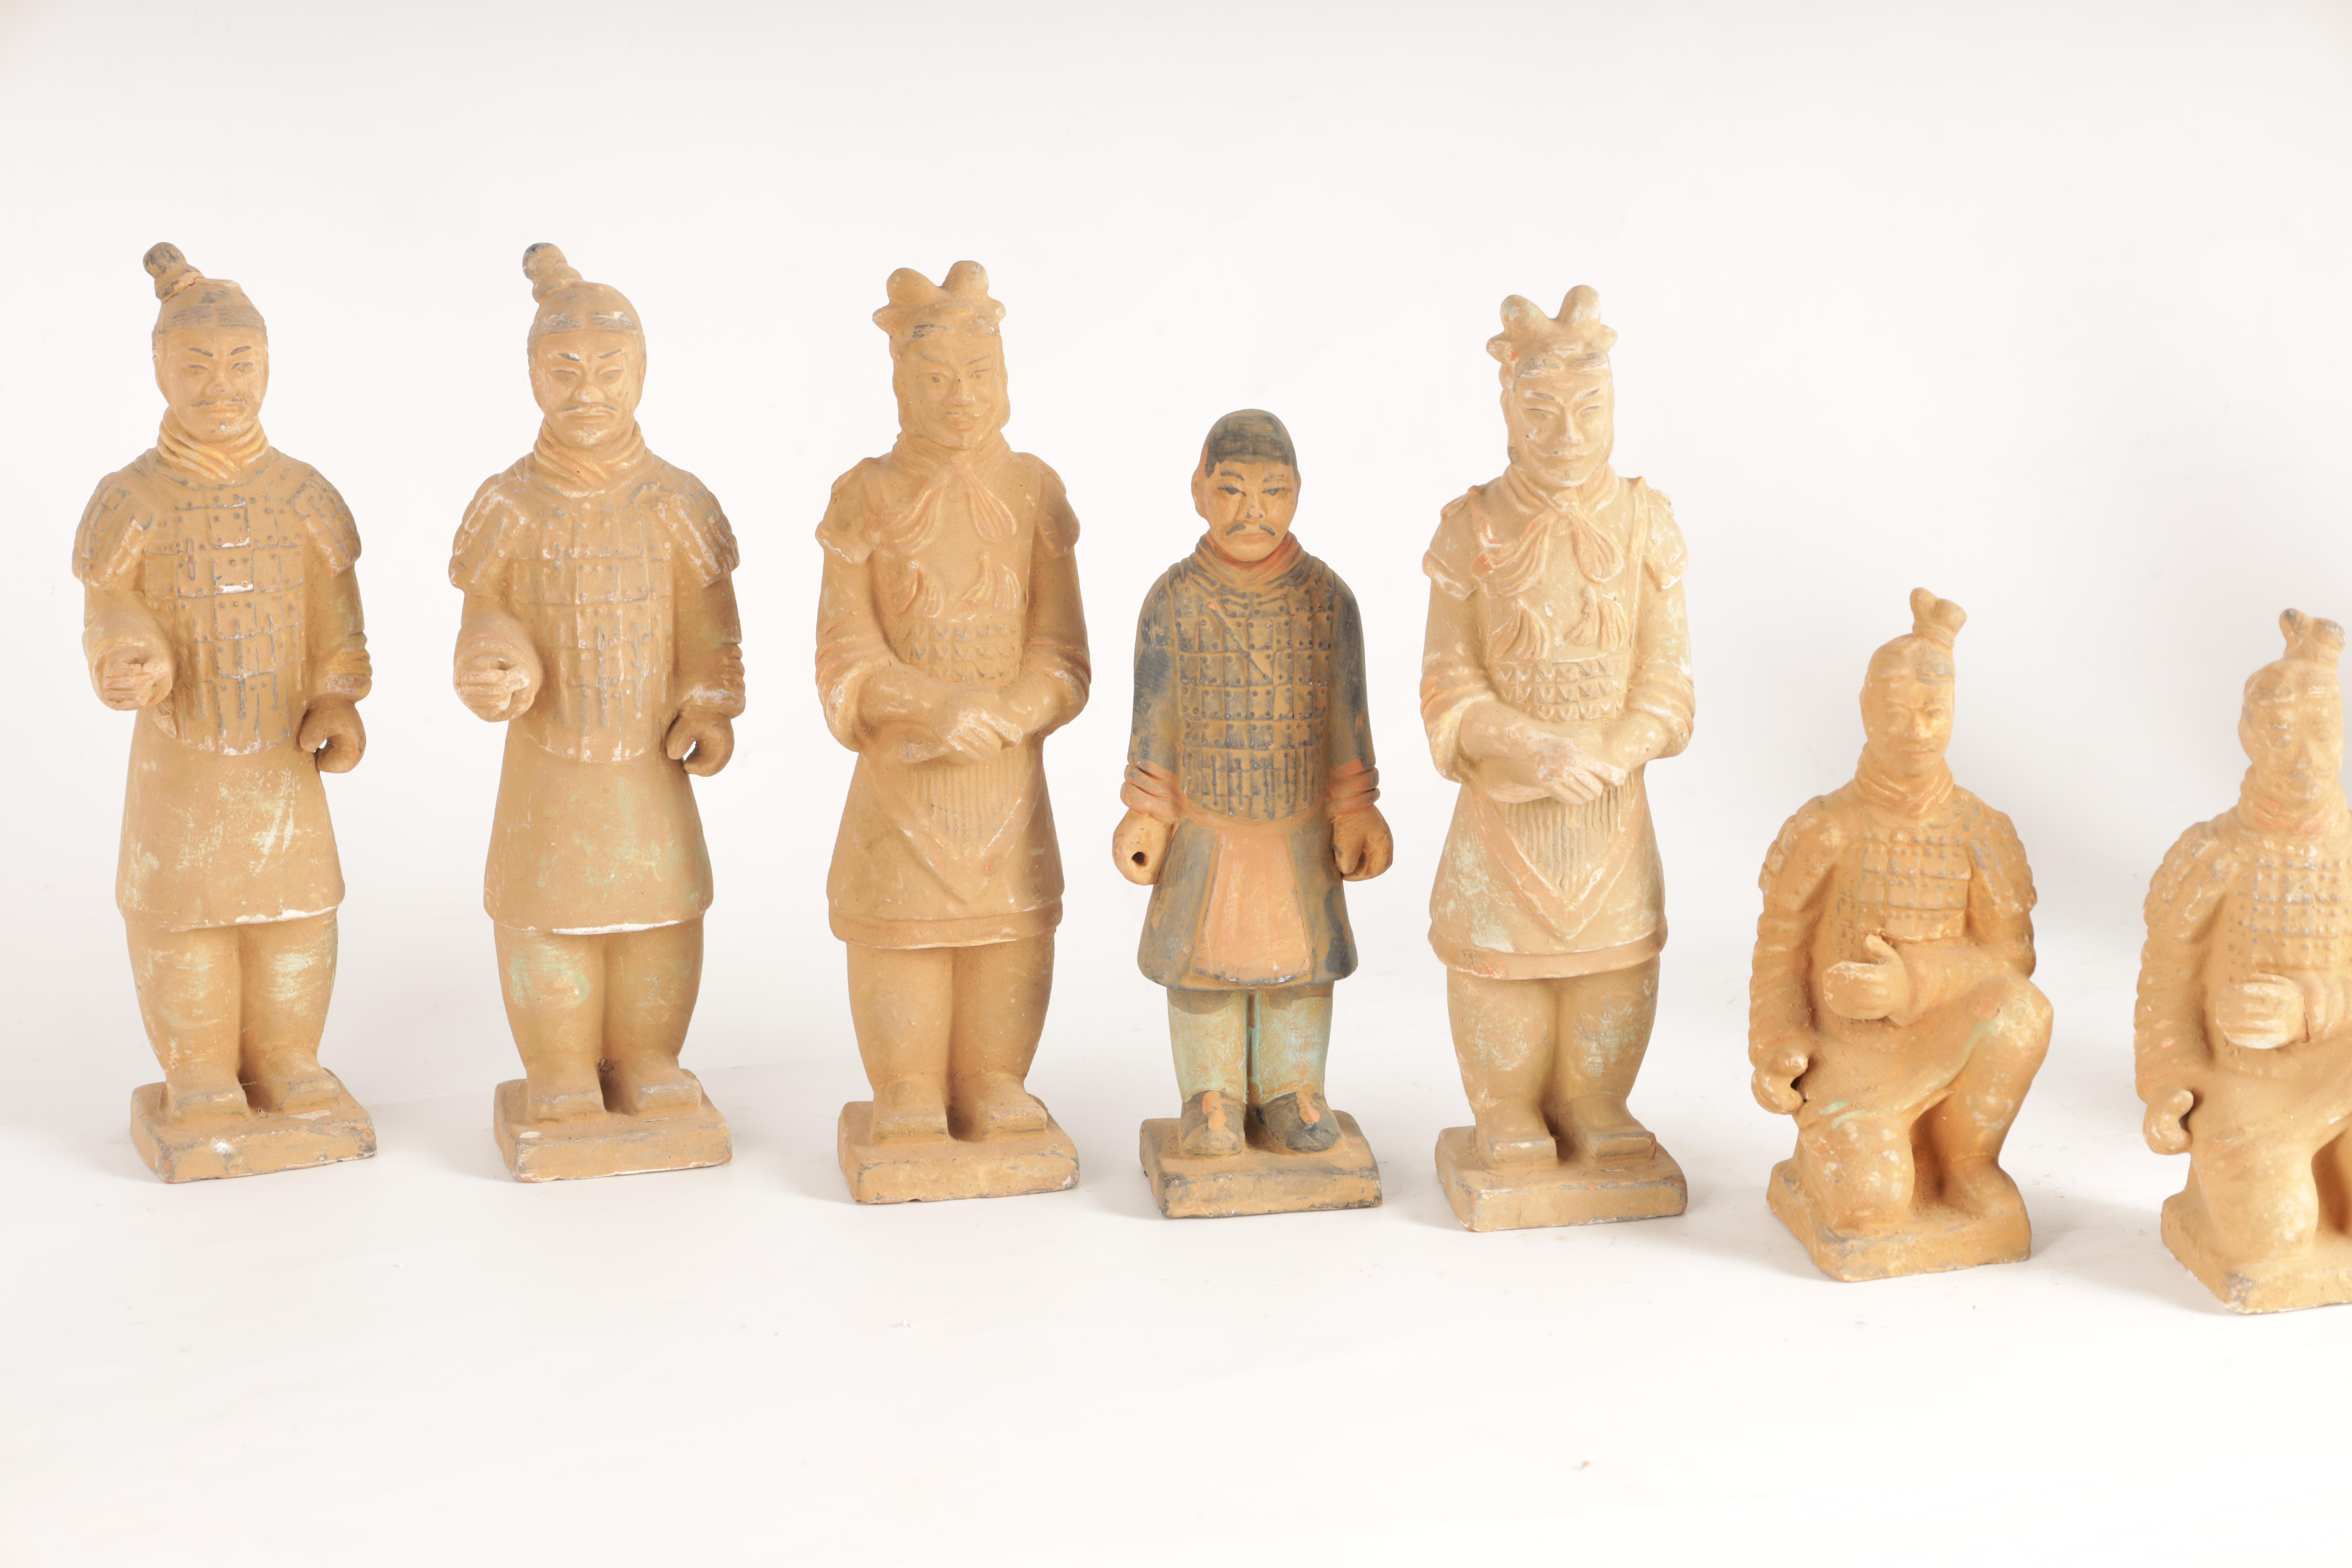 A SET OF 12 20TH CENTURY CHINESE FIGURES MODELLED AS THE TERRACOTTA ARMY depicting soldiers in - Image 3 of 7